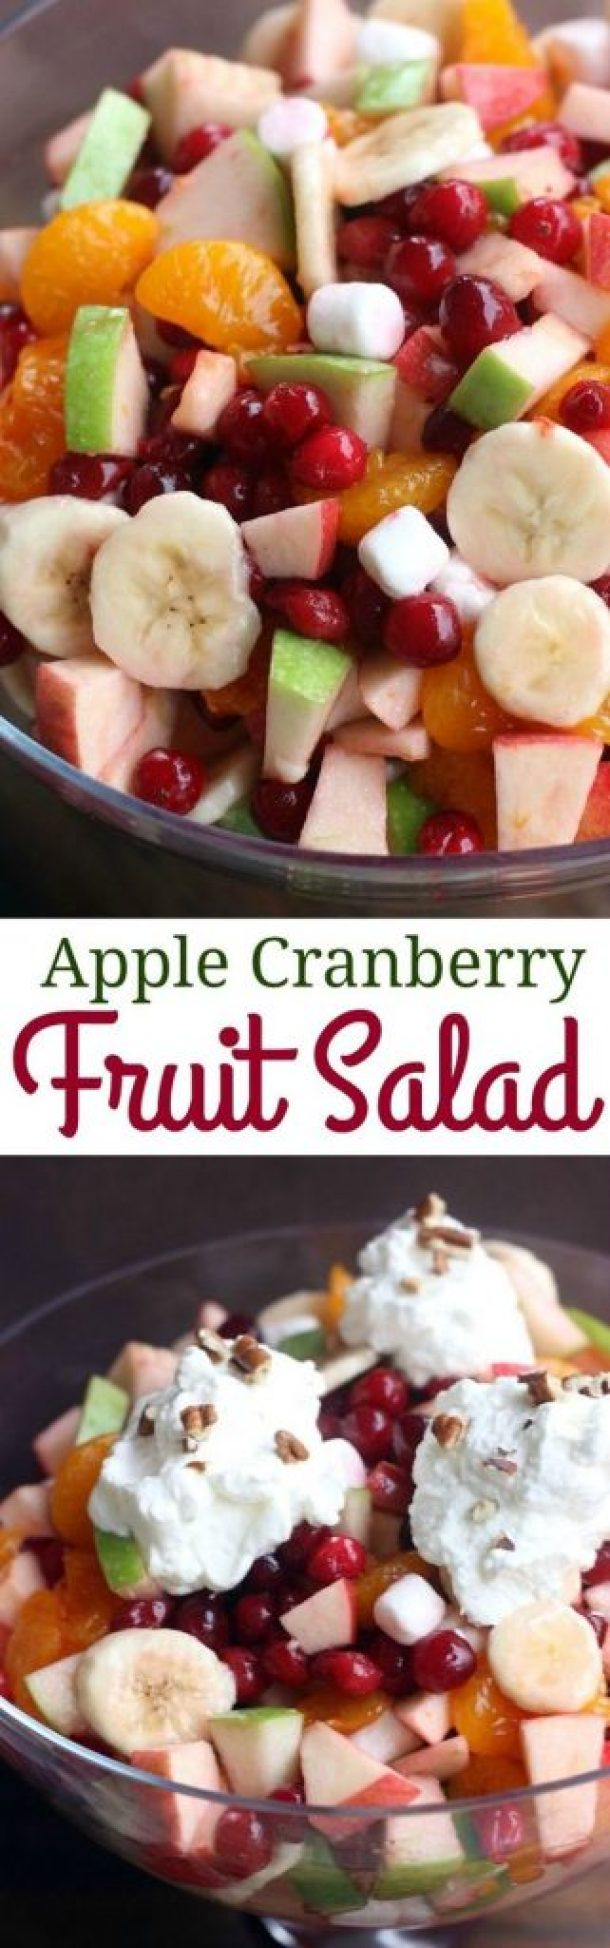 Apple Cranberry Fruit Salad Side Dish Recipe | Tastes Better From Scratch